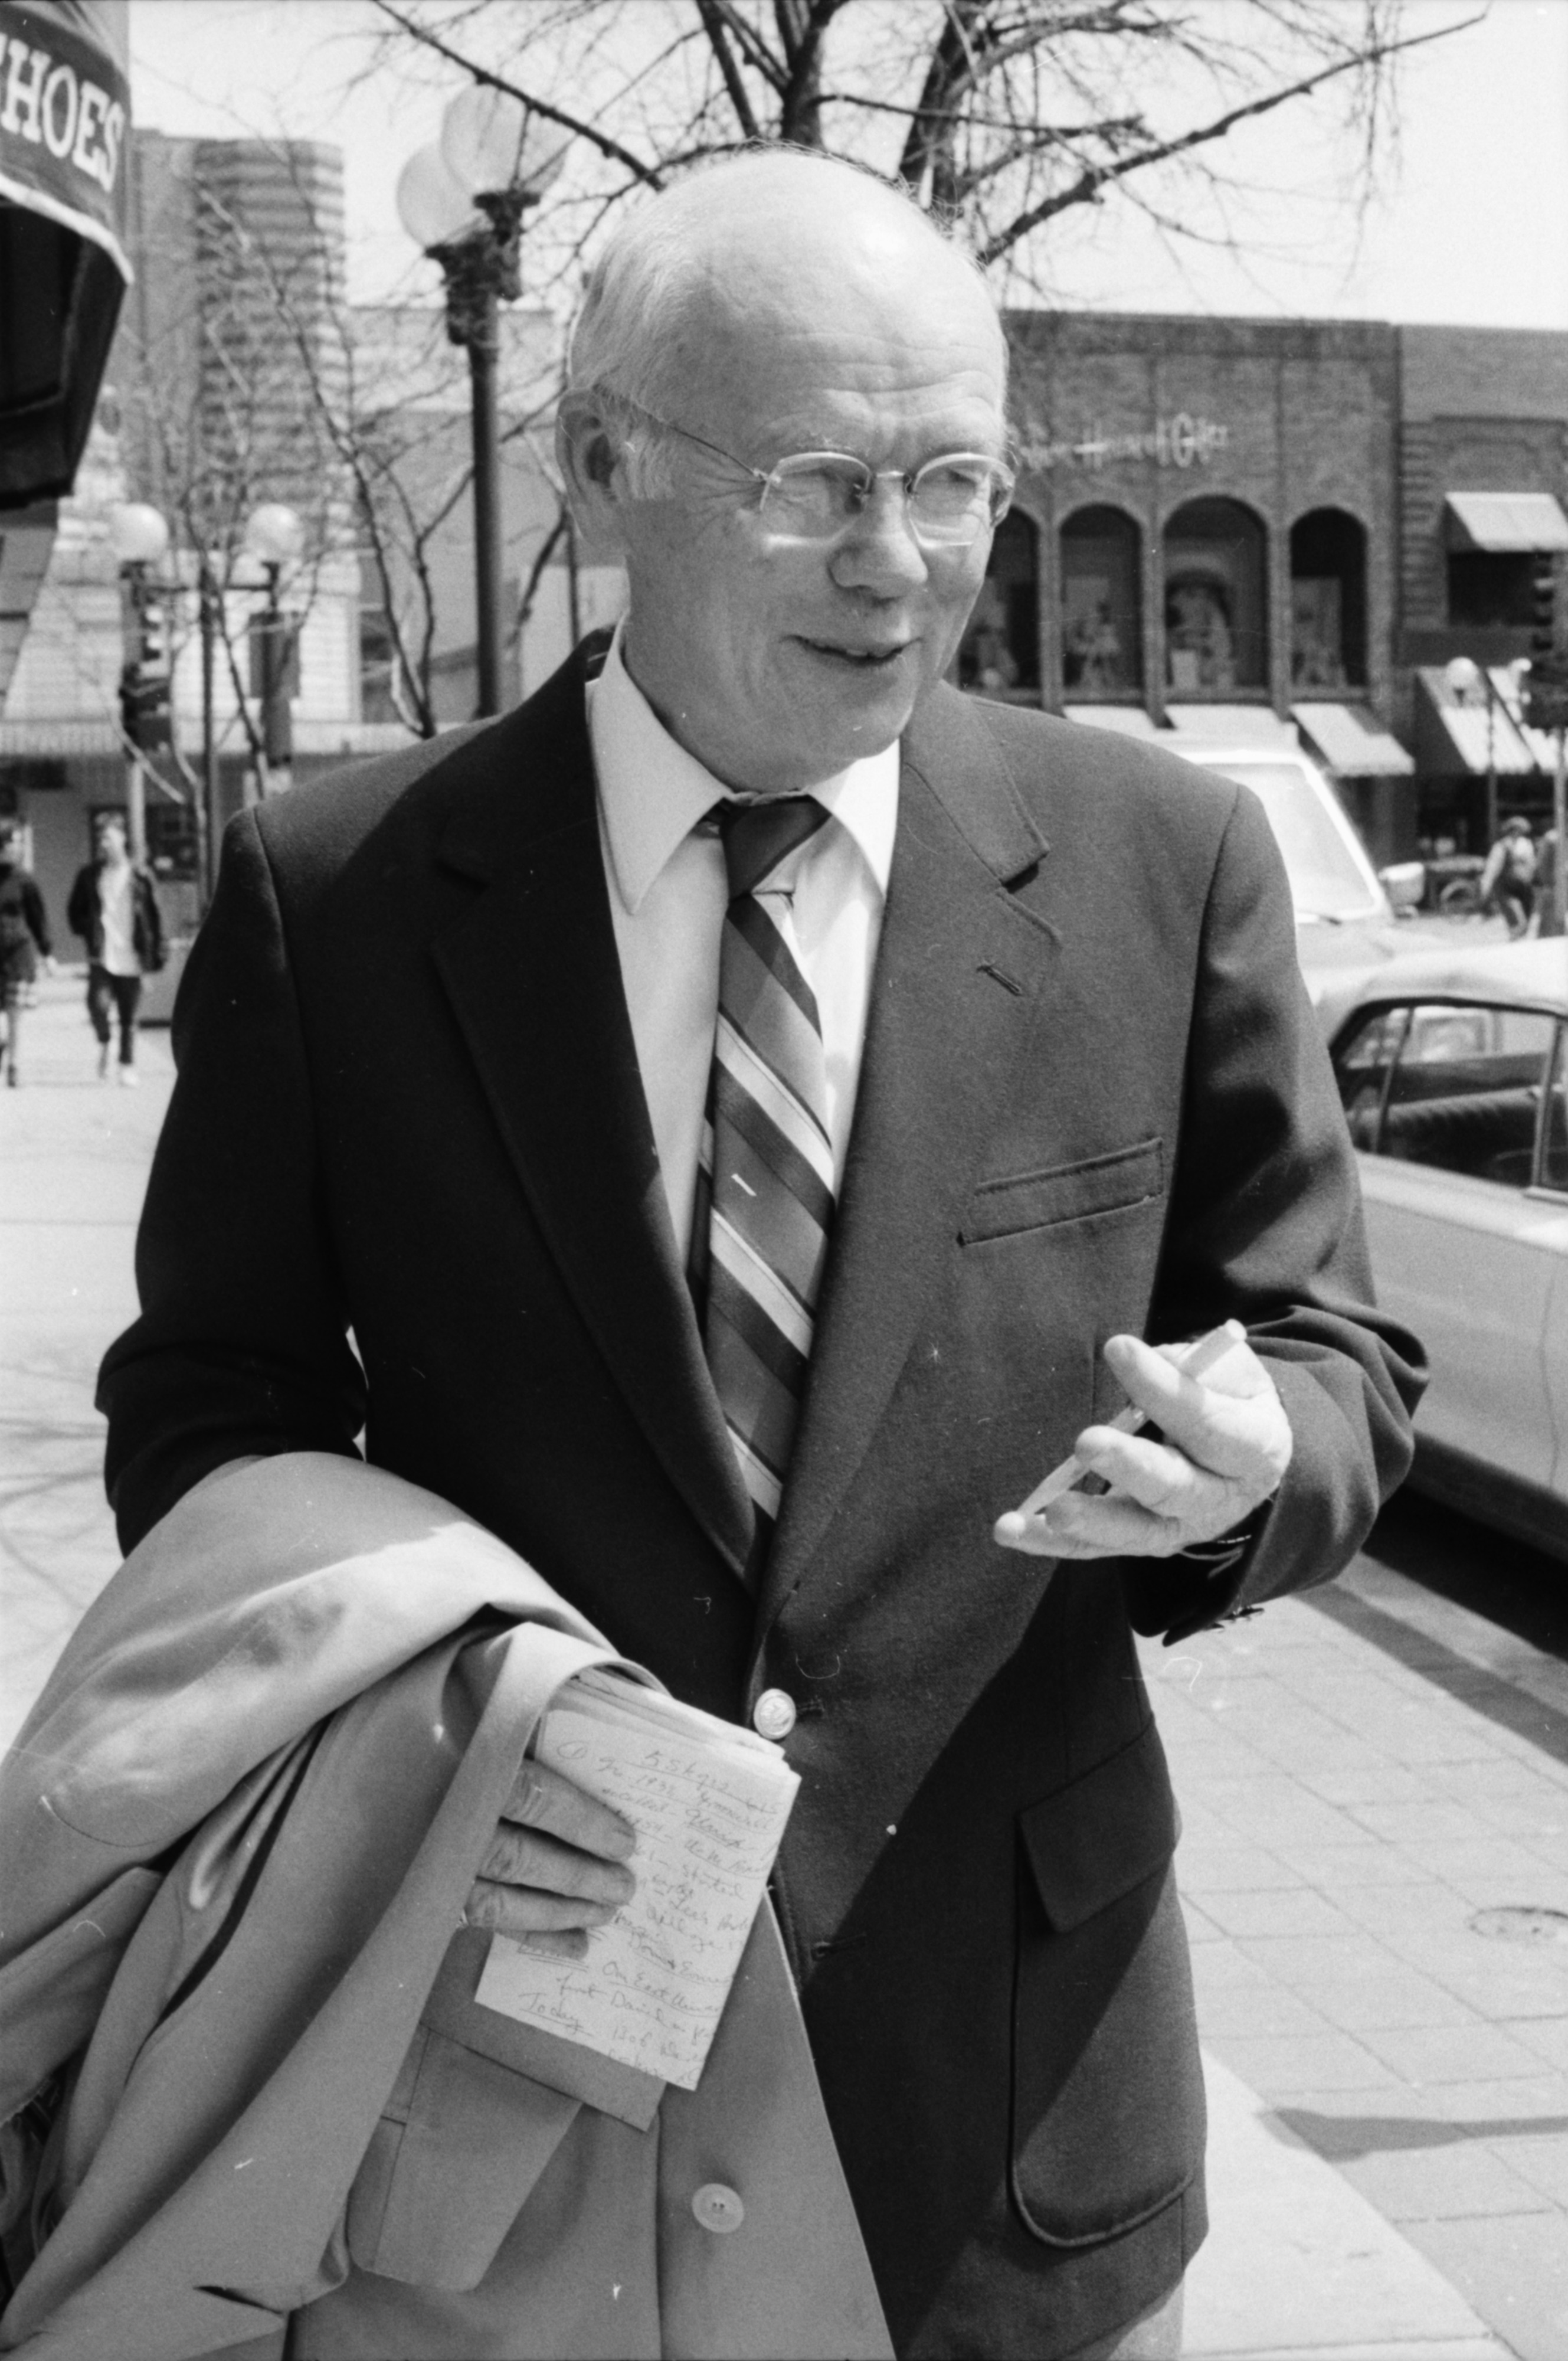 Ann Arbor News Reporter Bill Treml, May 1989 image